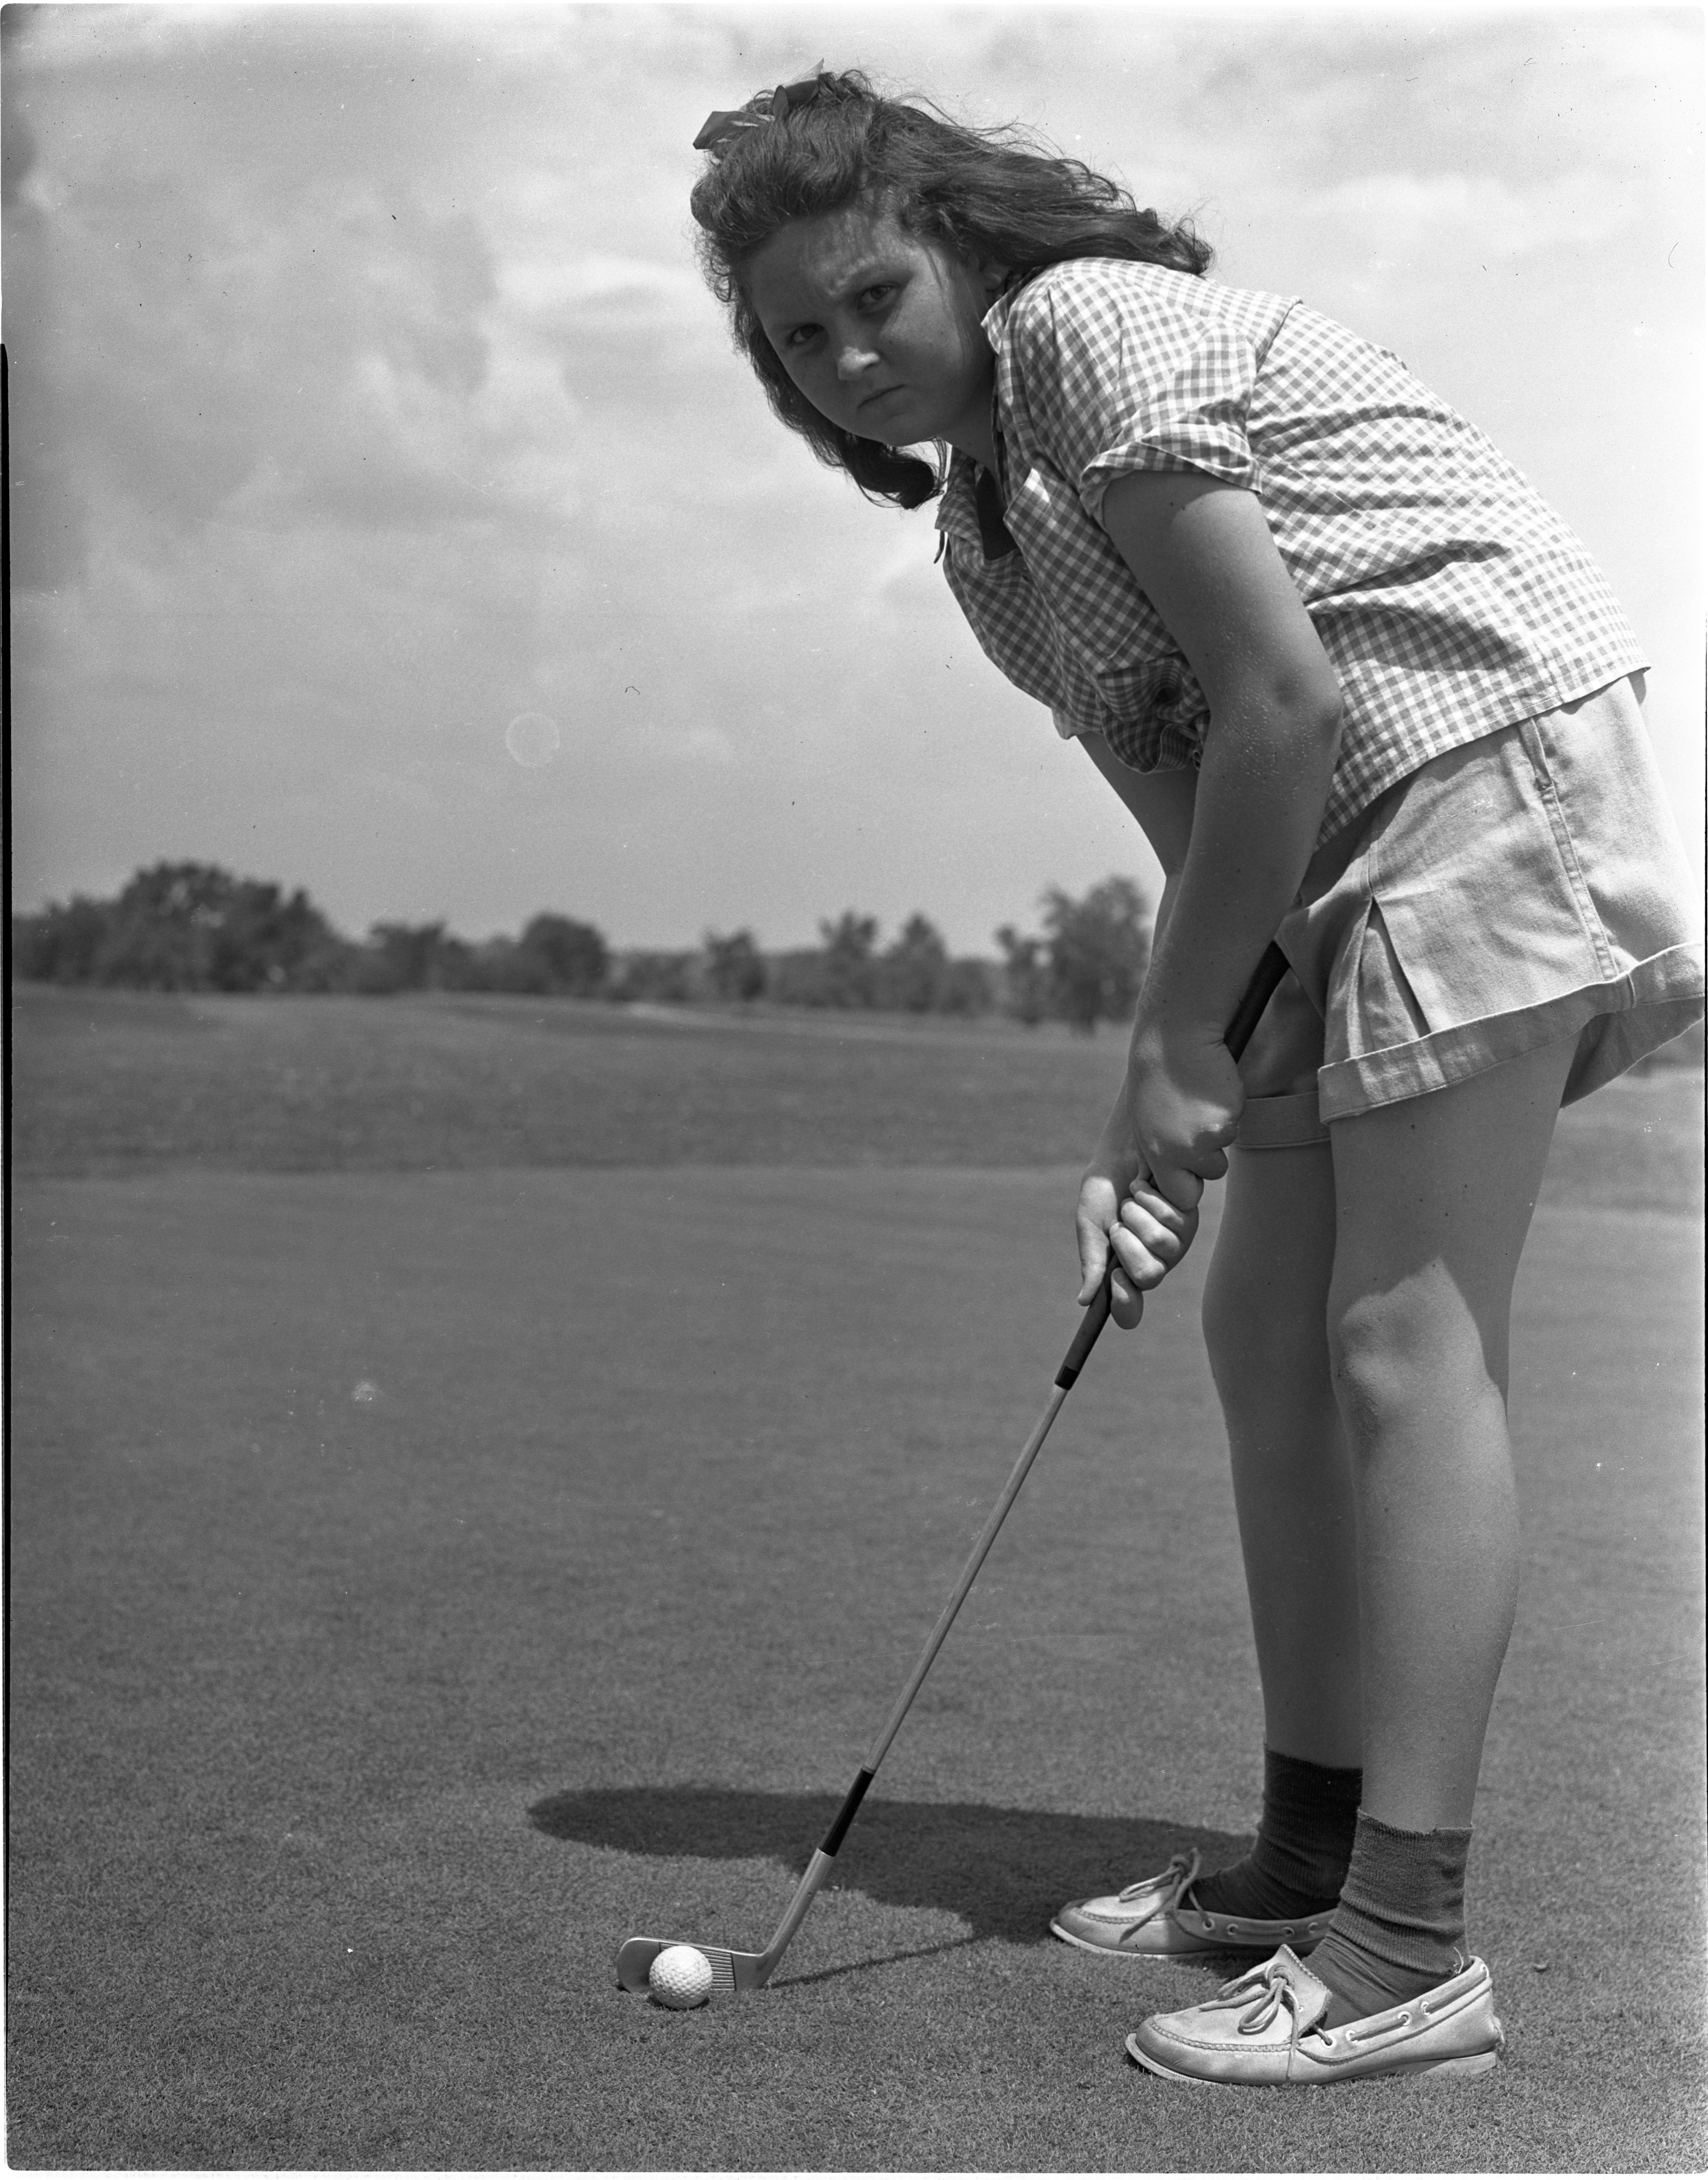 Angela Dobson Eyes Her Target In The Women's City Golf Tournament Qualifying Rounds At Barton Hills, July 1939 image